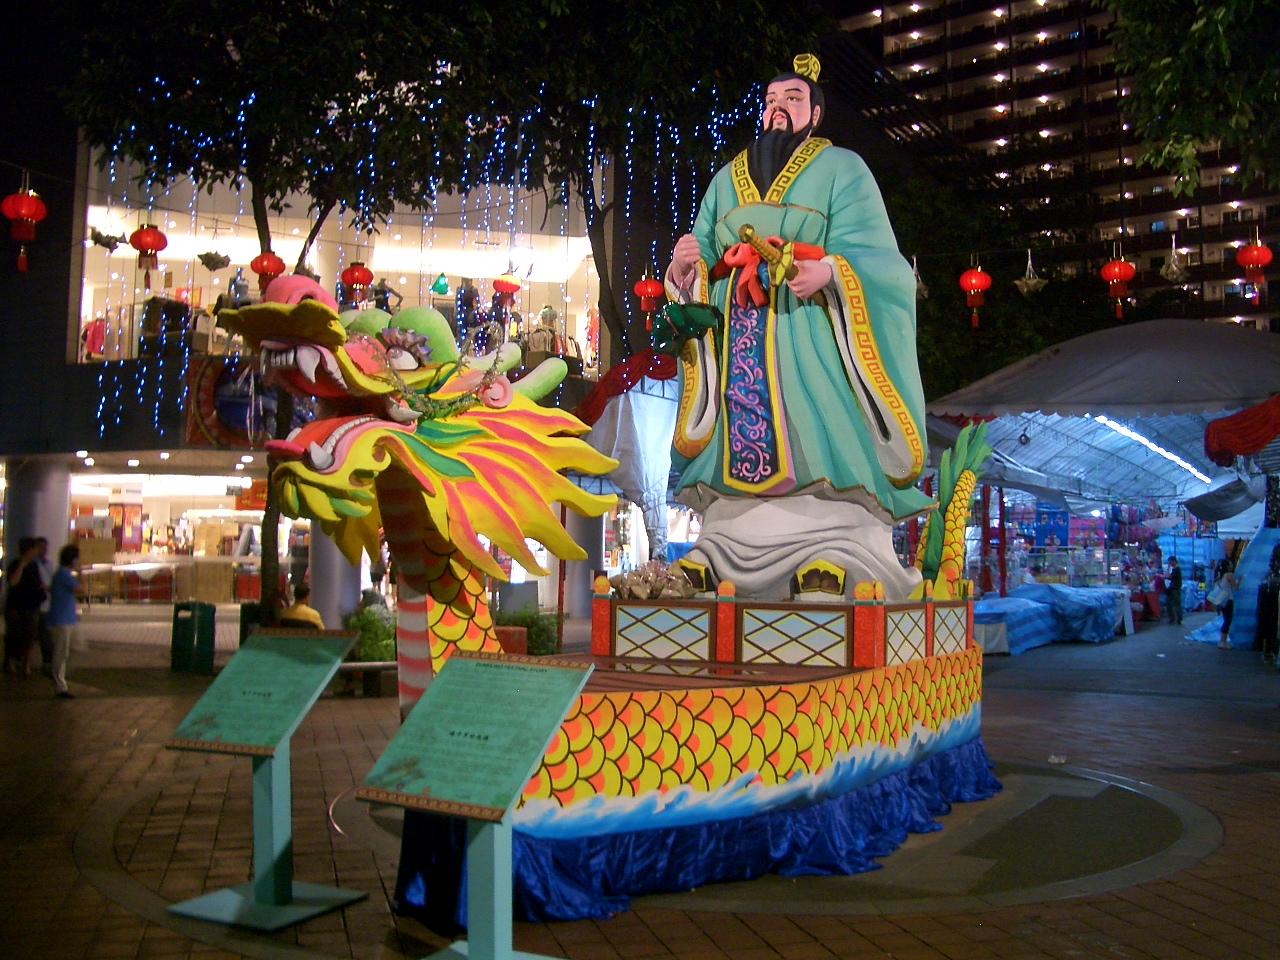 Qu Yuan on a Dragon Boat as depicted in a sculpture in Singapore on display during